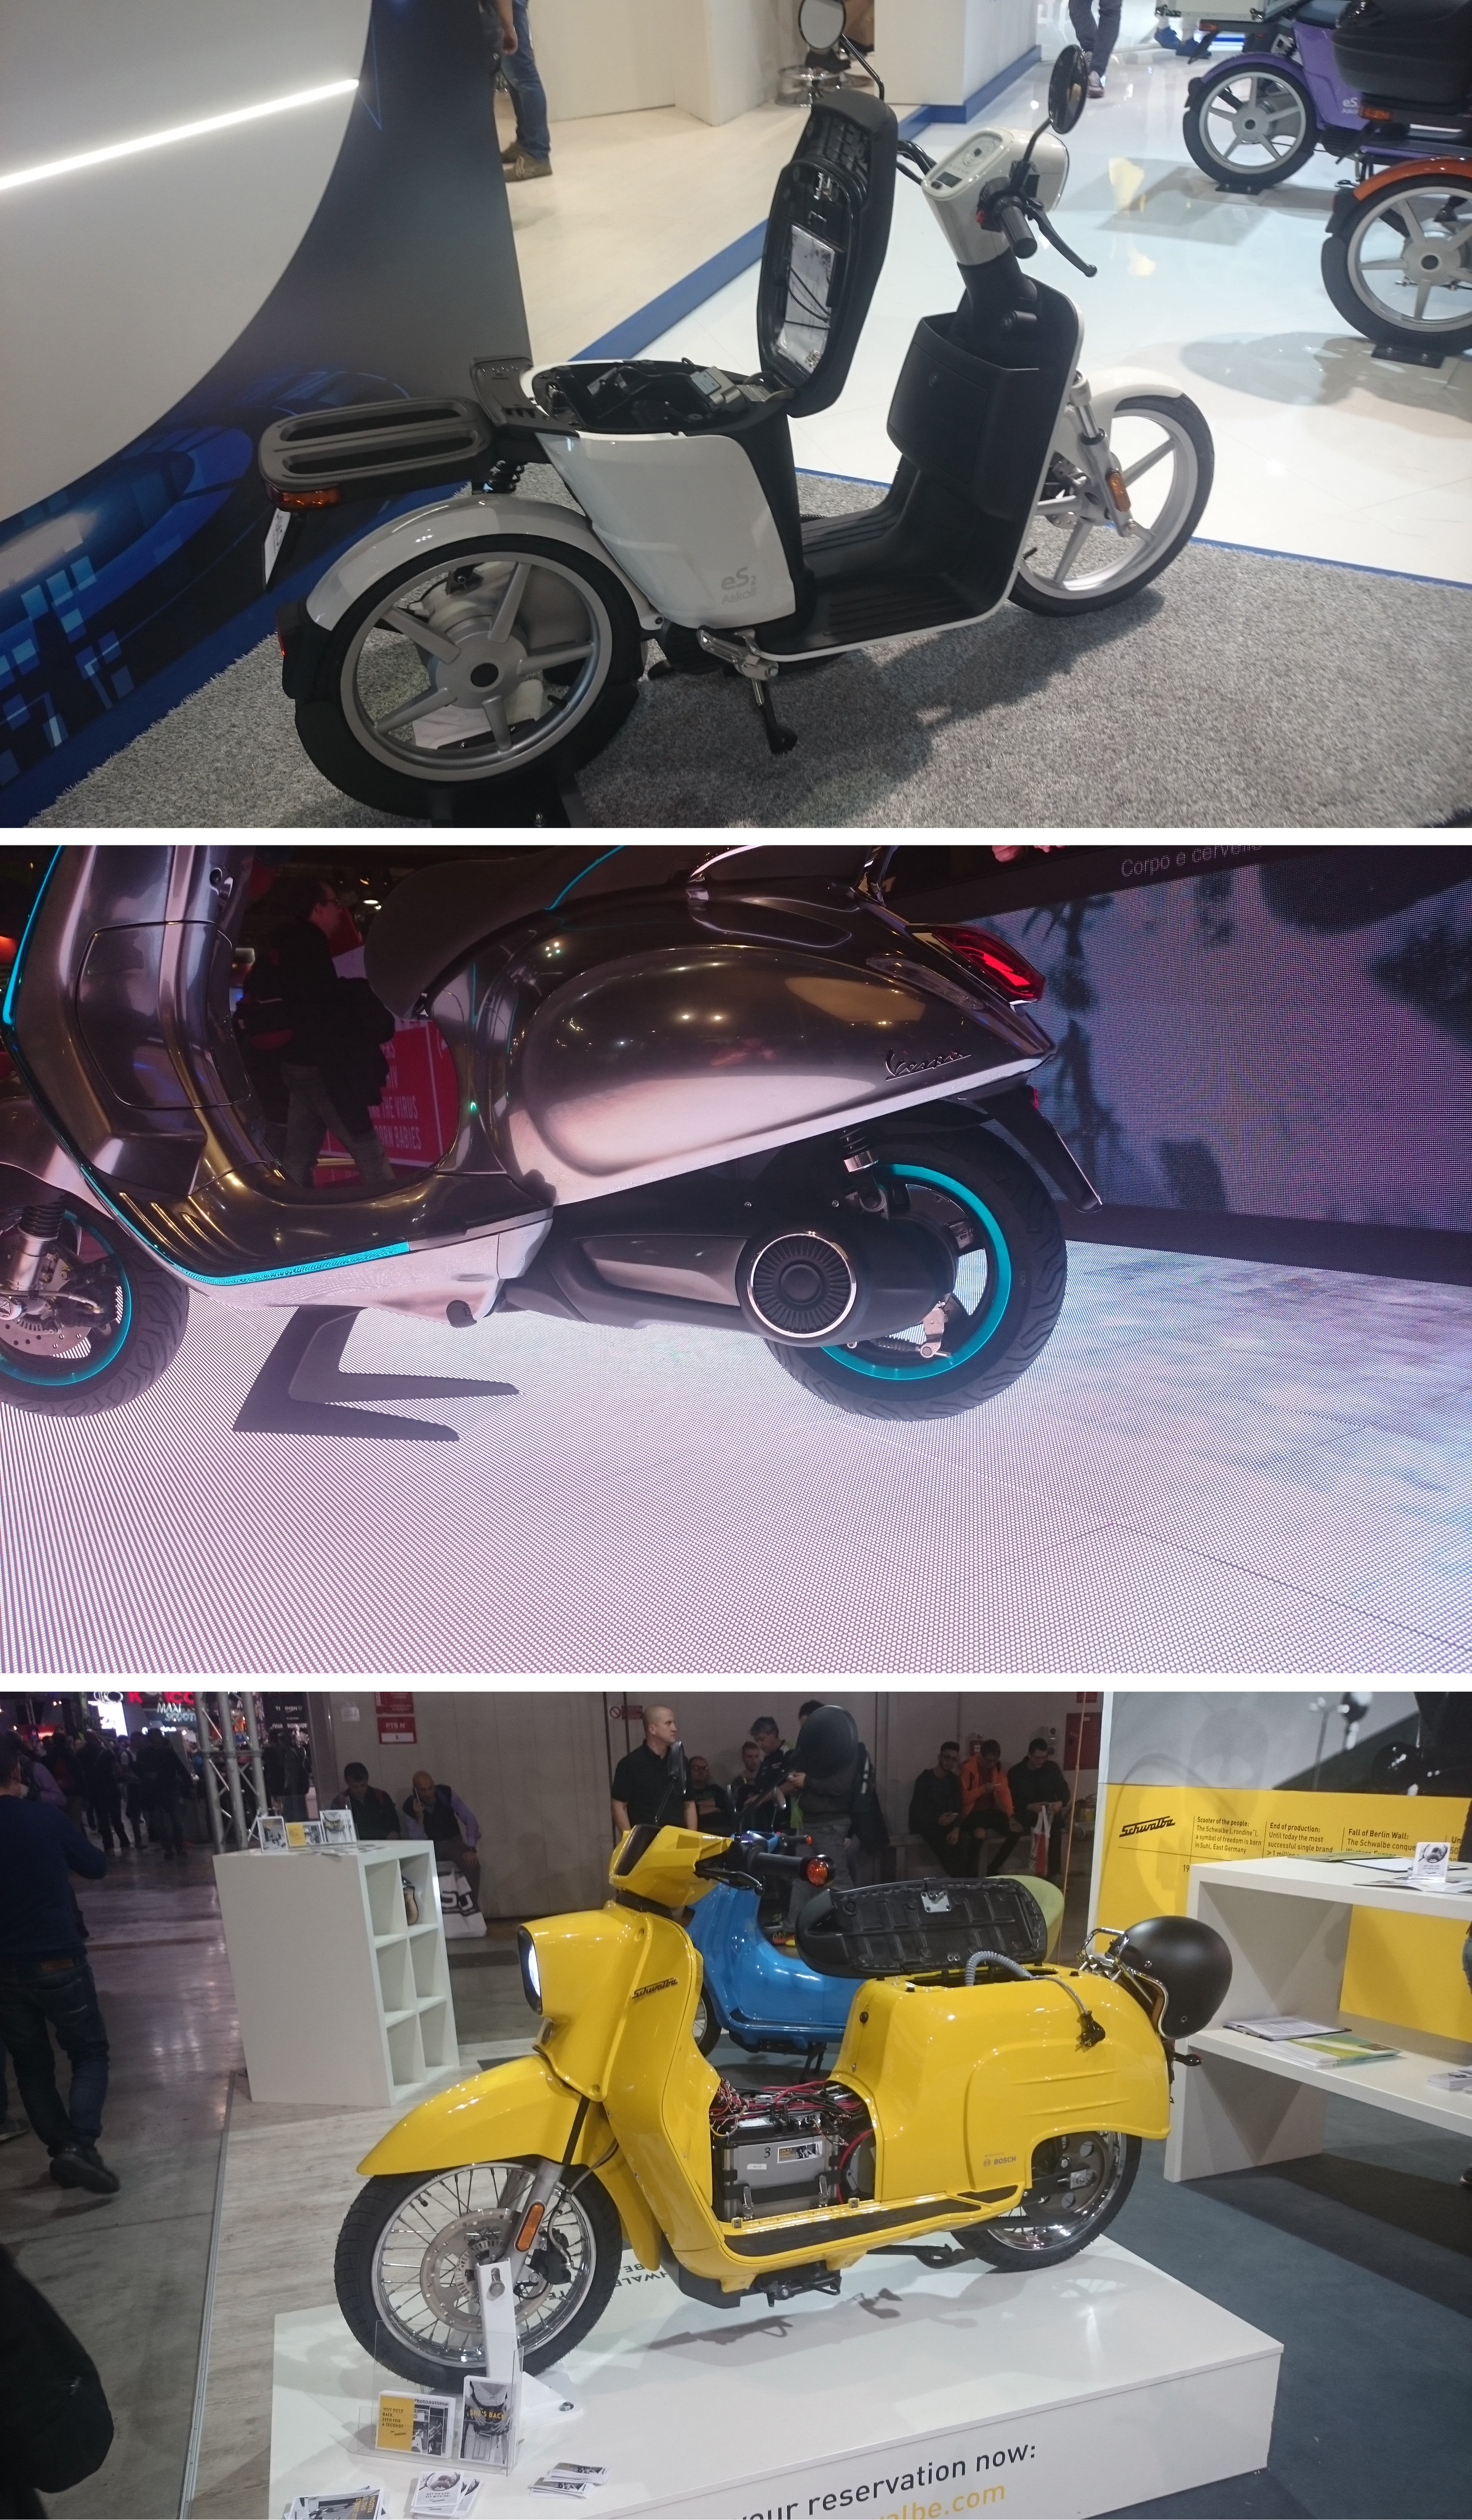 From top to bottom, Askoll ES2, Vespa Elettrica, Schwalbe Scooter.